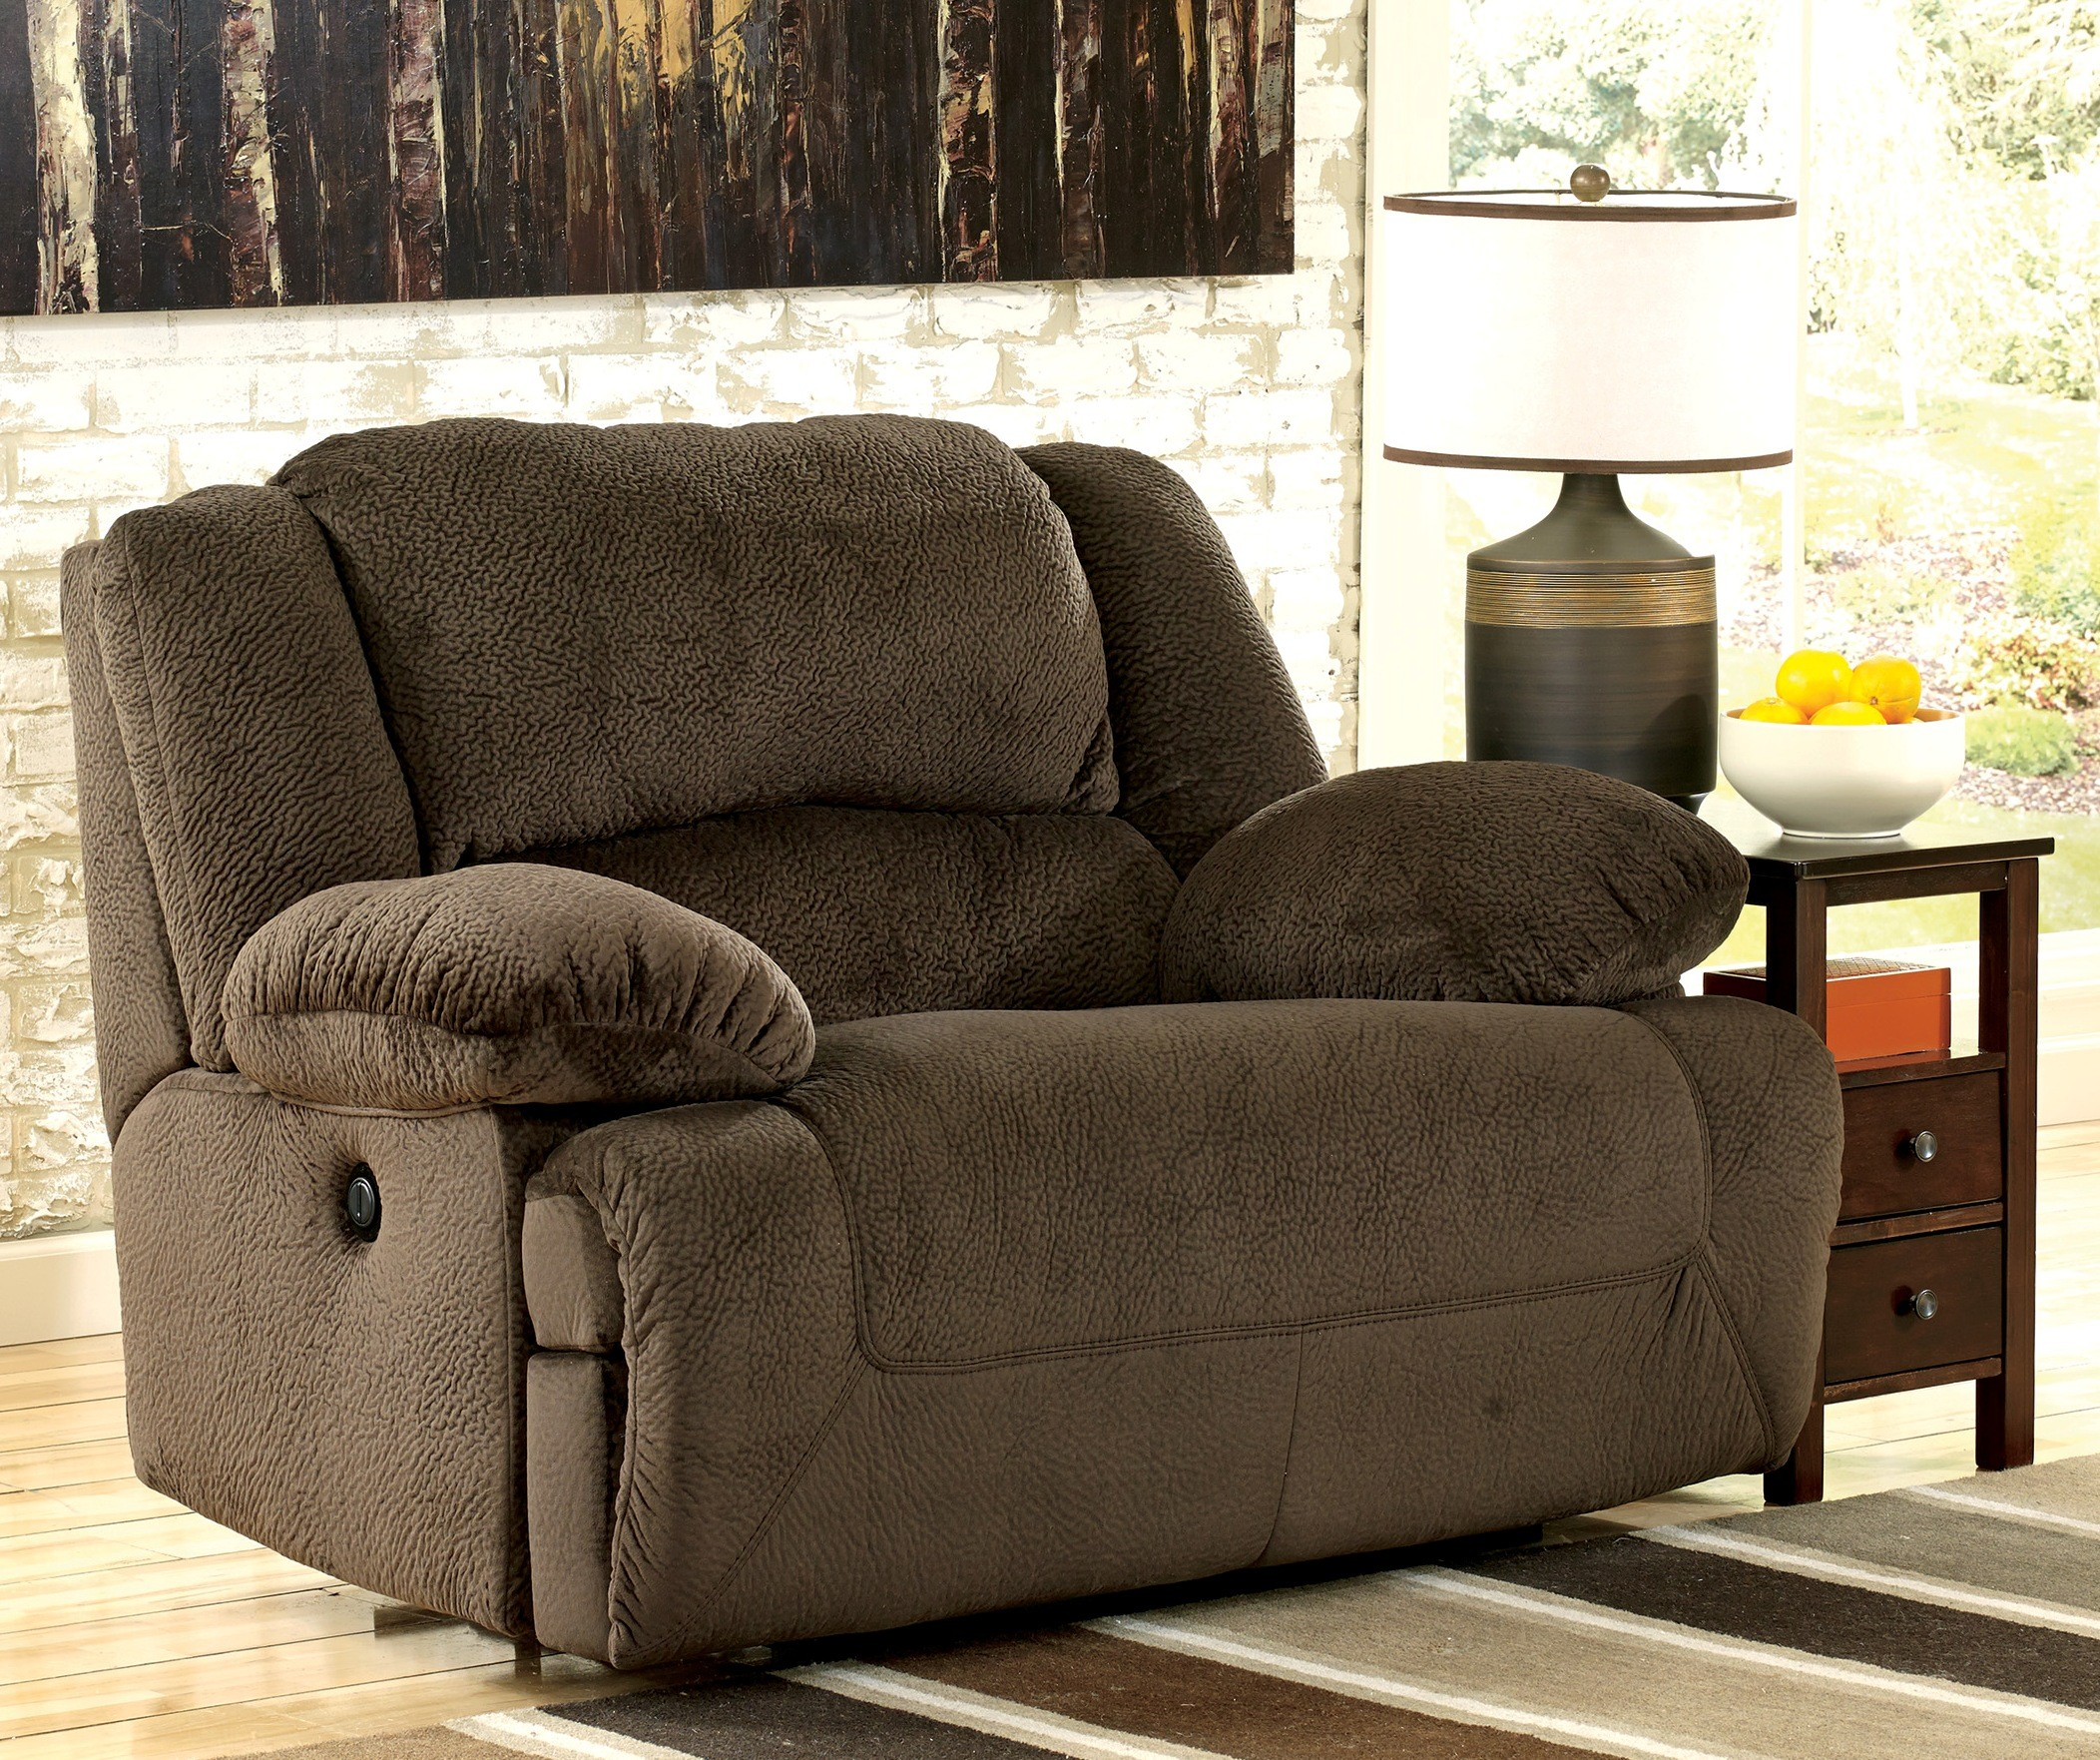 Toletta Chocolate Zero Wall Wide Seat Recliner From Ashley